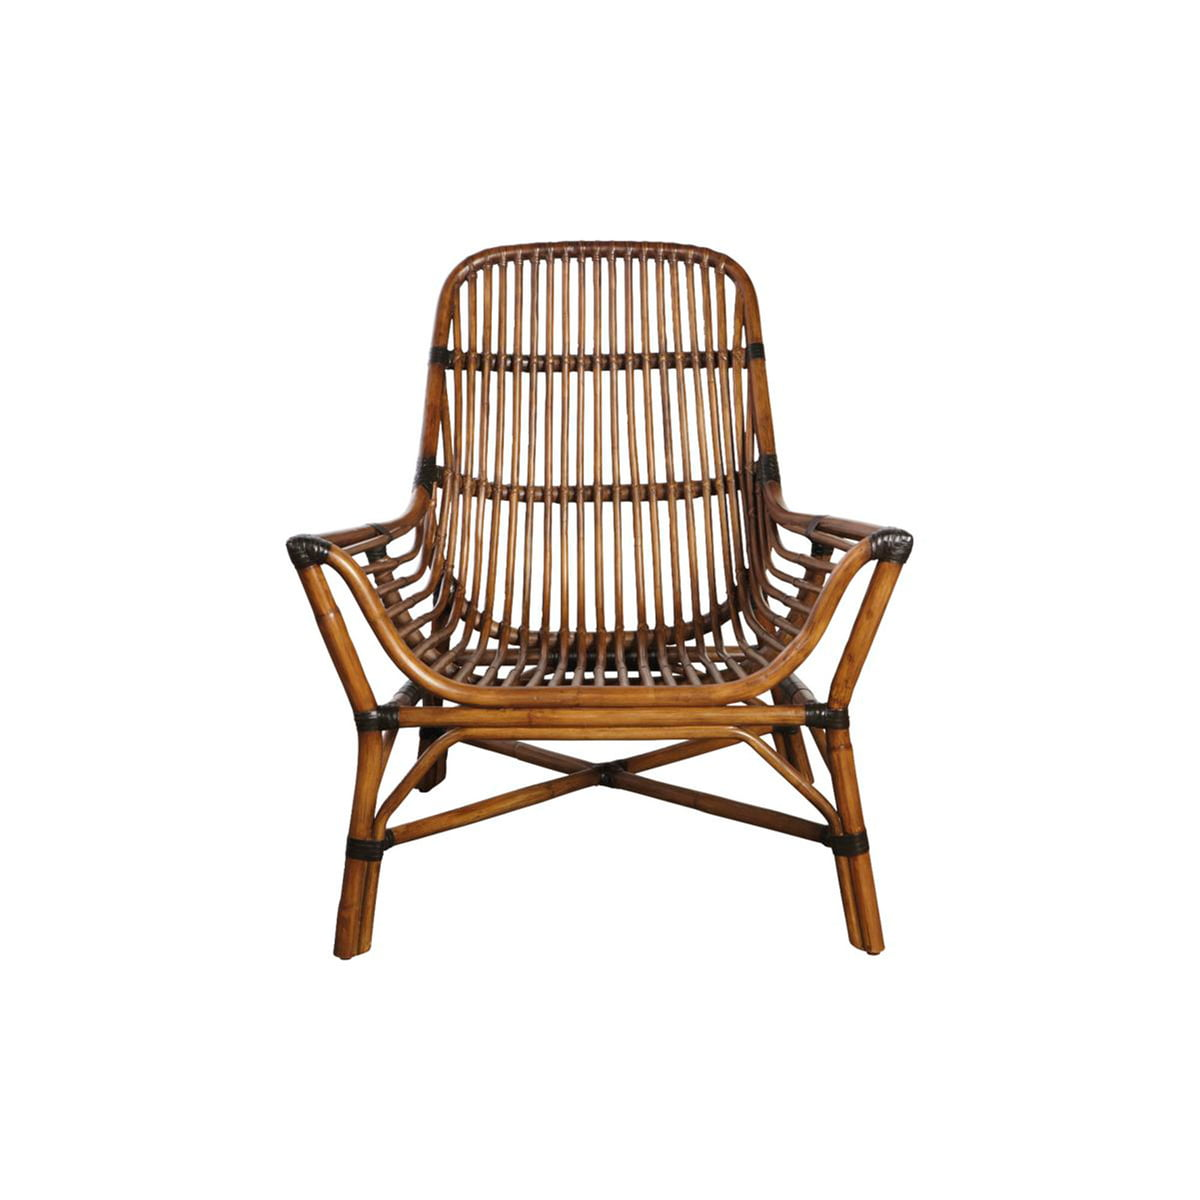 House Doctor Colony Lounge Chair Rattan braun